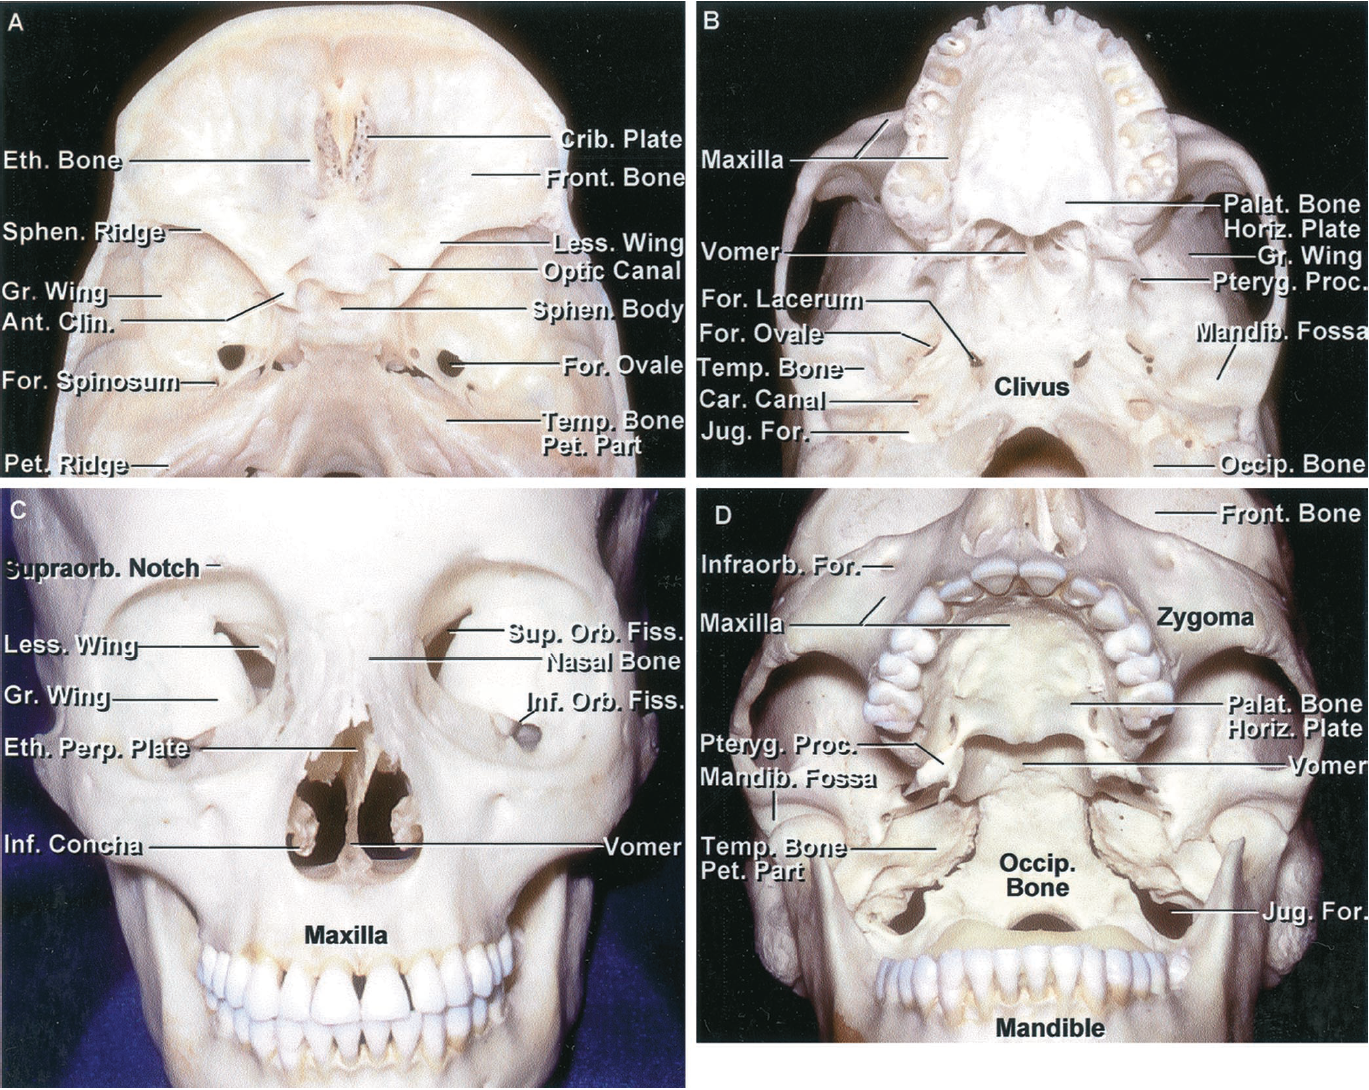 FIGURE 6.3. A-D. Osseous relationships of the anterior and middle cranial base. A, on the endocranial surface, the anterior and middle cranial base corresponds to the anterior and middle fossae. The anterior part of the cranial base is separated from the middle fossa by the sphenoid ridge and the chiasmatic sulcus. The middle cranial base is separated from the posterior cranial base by the dorsum sellae and the petrous ridges. The upper surface of the anterior cranial base is formed by the frontal bone, which roofs the orbit; the ethmoid bone, which is interposed between the frontal bones and is the site of the cribriform plate; and the lesser wing and anterior part of the body of the sphenoid, which forms the posterior part of the floor of the anterior fossa. The upper surface of the middle cranial base floor is formed by the greater sphenoid wing and posterior two-thirds of the sphenoid body anteriorly and the upper surface of the temporal bone posteriorly. The posterior part of the cranial base is formed by the temporal and occipital bones. The cribriform plate, sella, and clivus are located in the medial part of the cranial base. The lateral part of the cranial base is located above the orbits, pterygopalatine and infratemporal fossae, and the subtemporal and lateral part of the suboccipital areas. B, exocranial surface of the cranial base. This surface is more complicated than the endocranial surface. It is not demarcated into three well-defined fossae as is the endocranial surface. The exocranial surface is formed by the maxilla, the zygomatic, palatine, sphenoid, temporal, and occipital bones, and the vomer. The maxilla, orbits, and nasal cavity are located below the anterior fossa. The anterior part of the hard palate is formed by the maxilla and the posterior part is formed by the palatine bone. The anterior part of the zygomatic arch is formed by the zygoma and the posterior part by the squamosal part of the temporal bone. The mandibular fossa on the lower surface of the temporal squama is located below the posterior part of the middle fossa. The vomer attaches to the lower part of the body of the sphenoid and forms the posterior part of the nasal septum. C, anterior view. The orbital rim is formed by the frontal bone, zygoma, and maxilla. The roof of the orbit is formed by the frontal and sphenoid bones; the lateral wall by the greater sphenoid wing and the zygomatic bone; the floor by the maxilla, except for a small part of the posterior floor formed by the palatine bone; and the medial wall of the orbit by the maxilla and lacrimal and ethmoid bones. The nasal bone is interposed above the anterior nasal aperture between the maxillae. The nasal cavity is located between the ethmoid bones above and the maxillae, palatine bones, and sphenoid pterygoid process below. It is roofed by the frontal and ethmoid bones and the floor is formed by the maxillae and palatal bones. The osseous nasal septum is formed by the perpendicular ethmoid plate and the vomer. The inferior concha is a separate bone, and the middle and superior conchae are appendages of the ethmoid bone. The orbit opens through the superior orbital fissure into the middle fossa and through the inferior orbital fissure into the pterygopalatine and infratemporal fossae. D, anteroinferior view of the cranial base. The anterior part of the hard palate is formed by the maxillae and the posterior part is formed by the horizontal plate of the palatine bone. The vomer forms the posterior part of the nasal septum and divides the posterior nasal aperture in the midline. The infratemporal fossa is located below the greater sphenoid wing. The clivus is formed above by the body of the sphenoid bone and below by the basal part of the occipital bone. The petrous apex is interposed between the greater sphenoid wing and the clival part of the occipital bone. The mandibular condyles are set in the mandibular fossa, located below the posterior part of the middle fossa on the inferior surface of the squamosal part of the temporal bone.